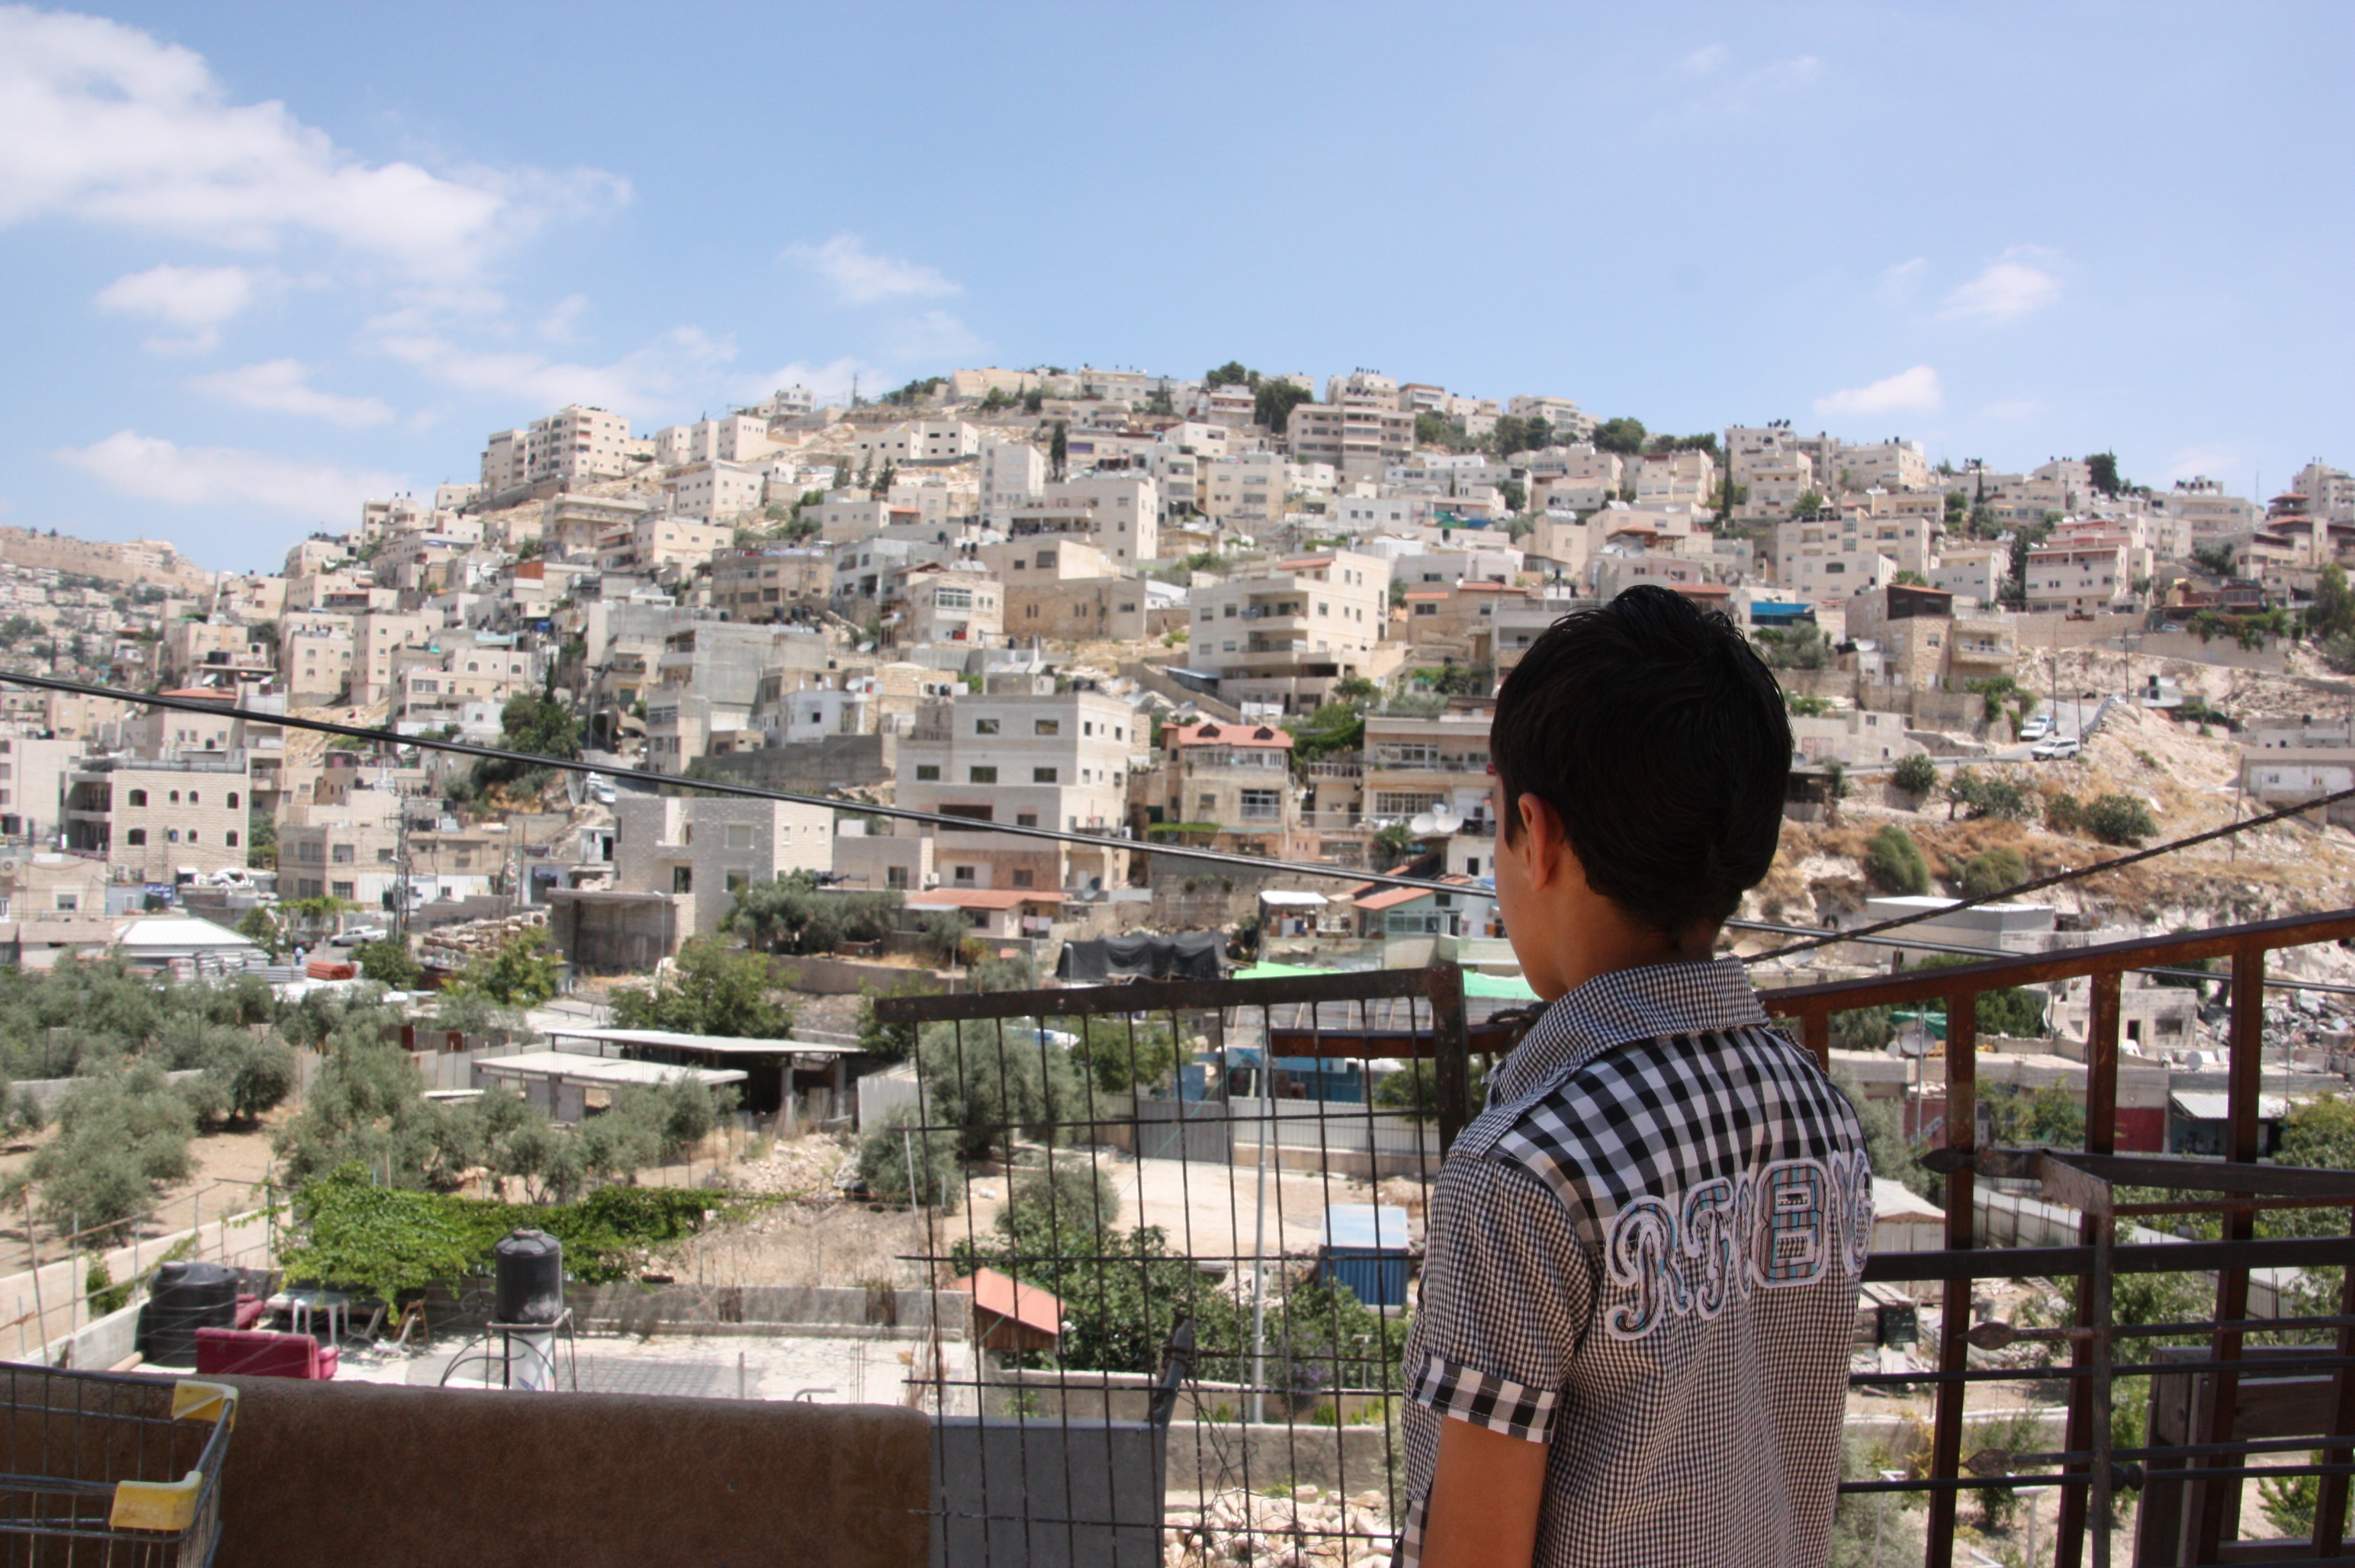 palestinian_children_face_an_uncertain_future_in_jerusalem_0.jpg